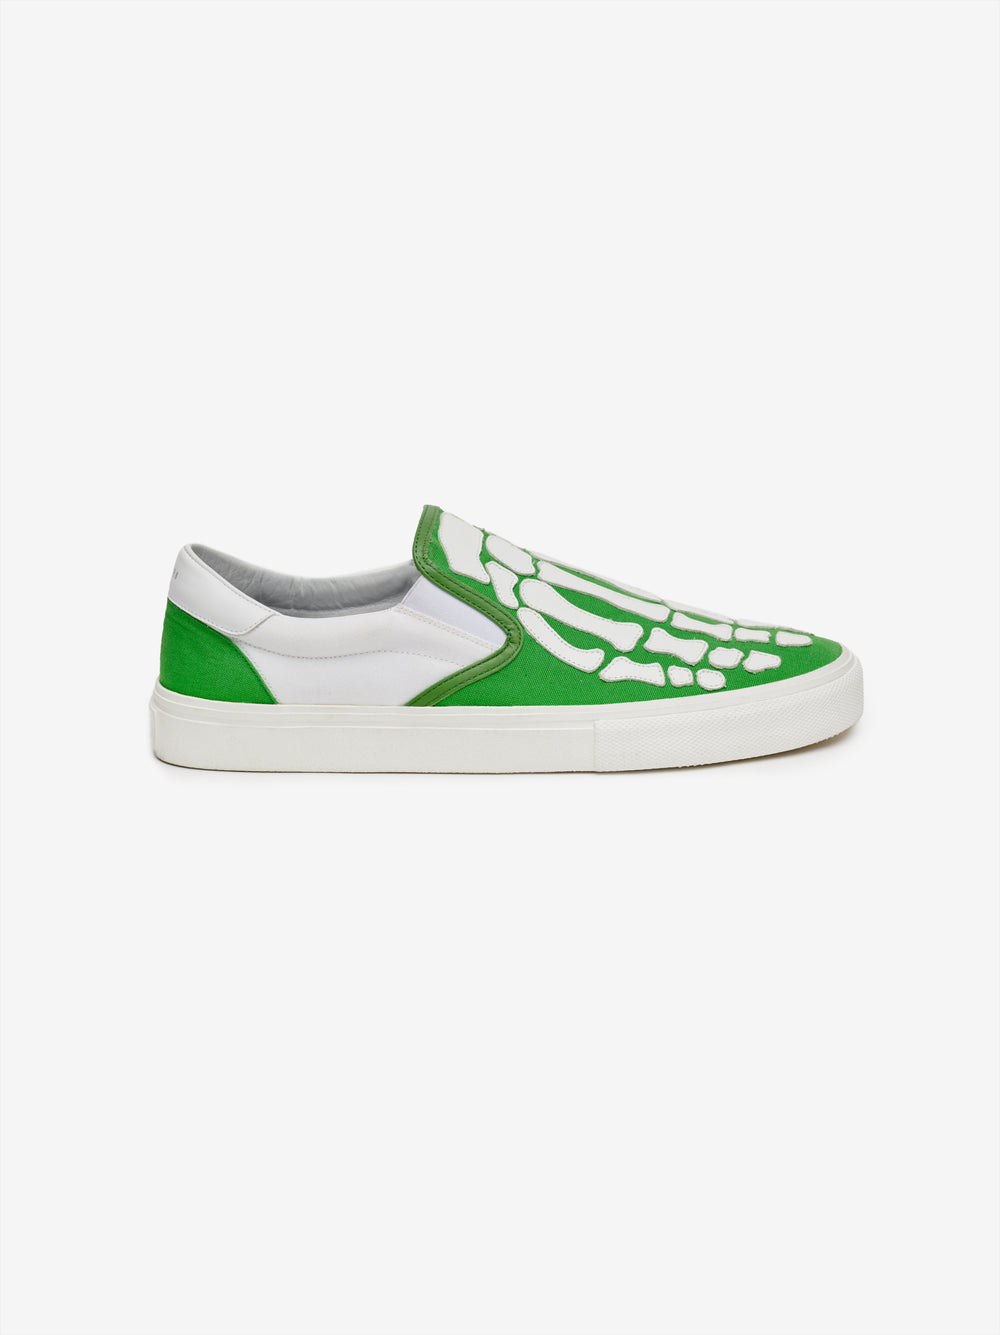 SKEL TOE SLIP ON - GREEN / WHITE